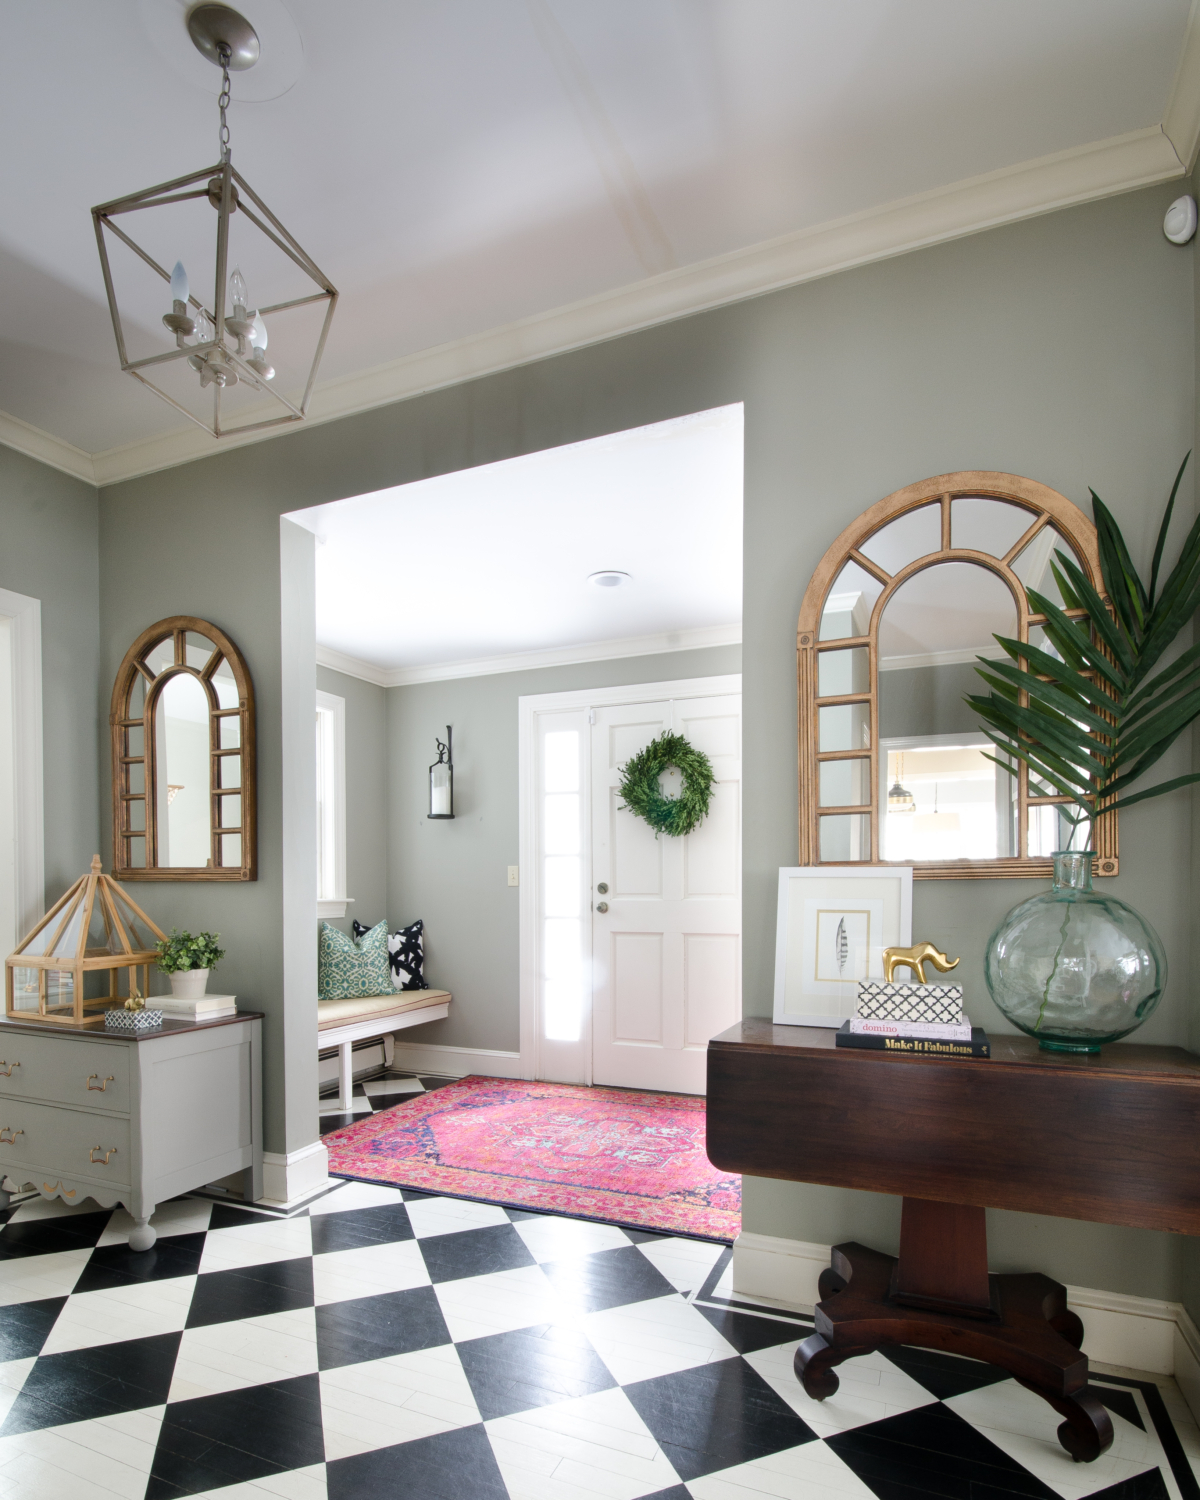 Entryway with built in bench seat, black and white checkered floors, pink rug, gold arched mirrors